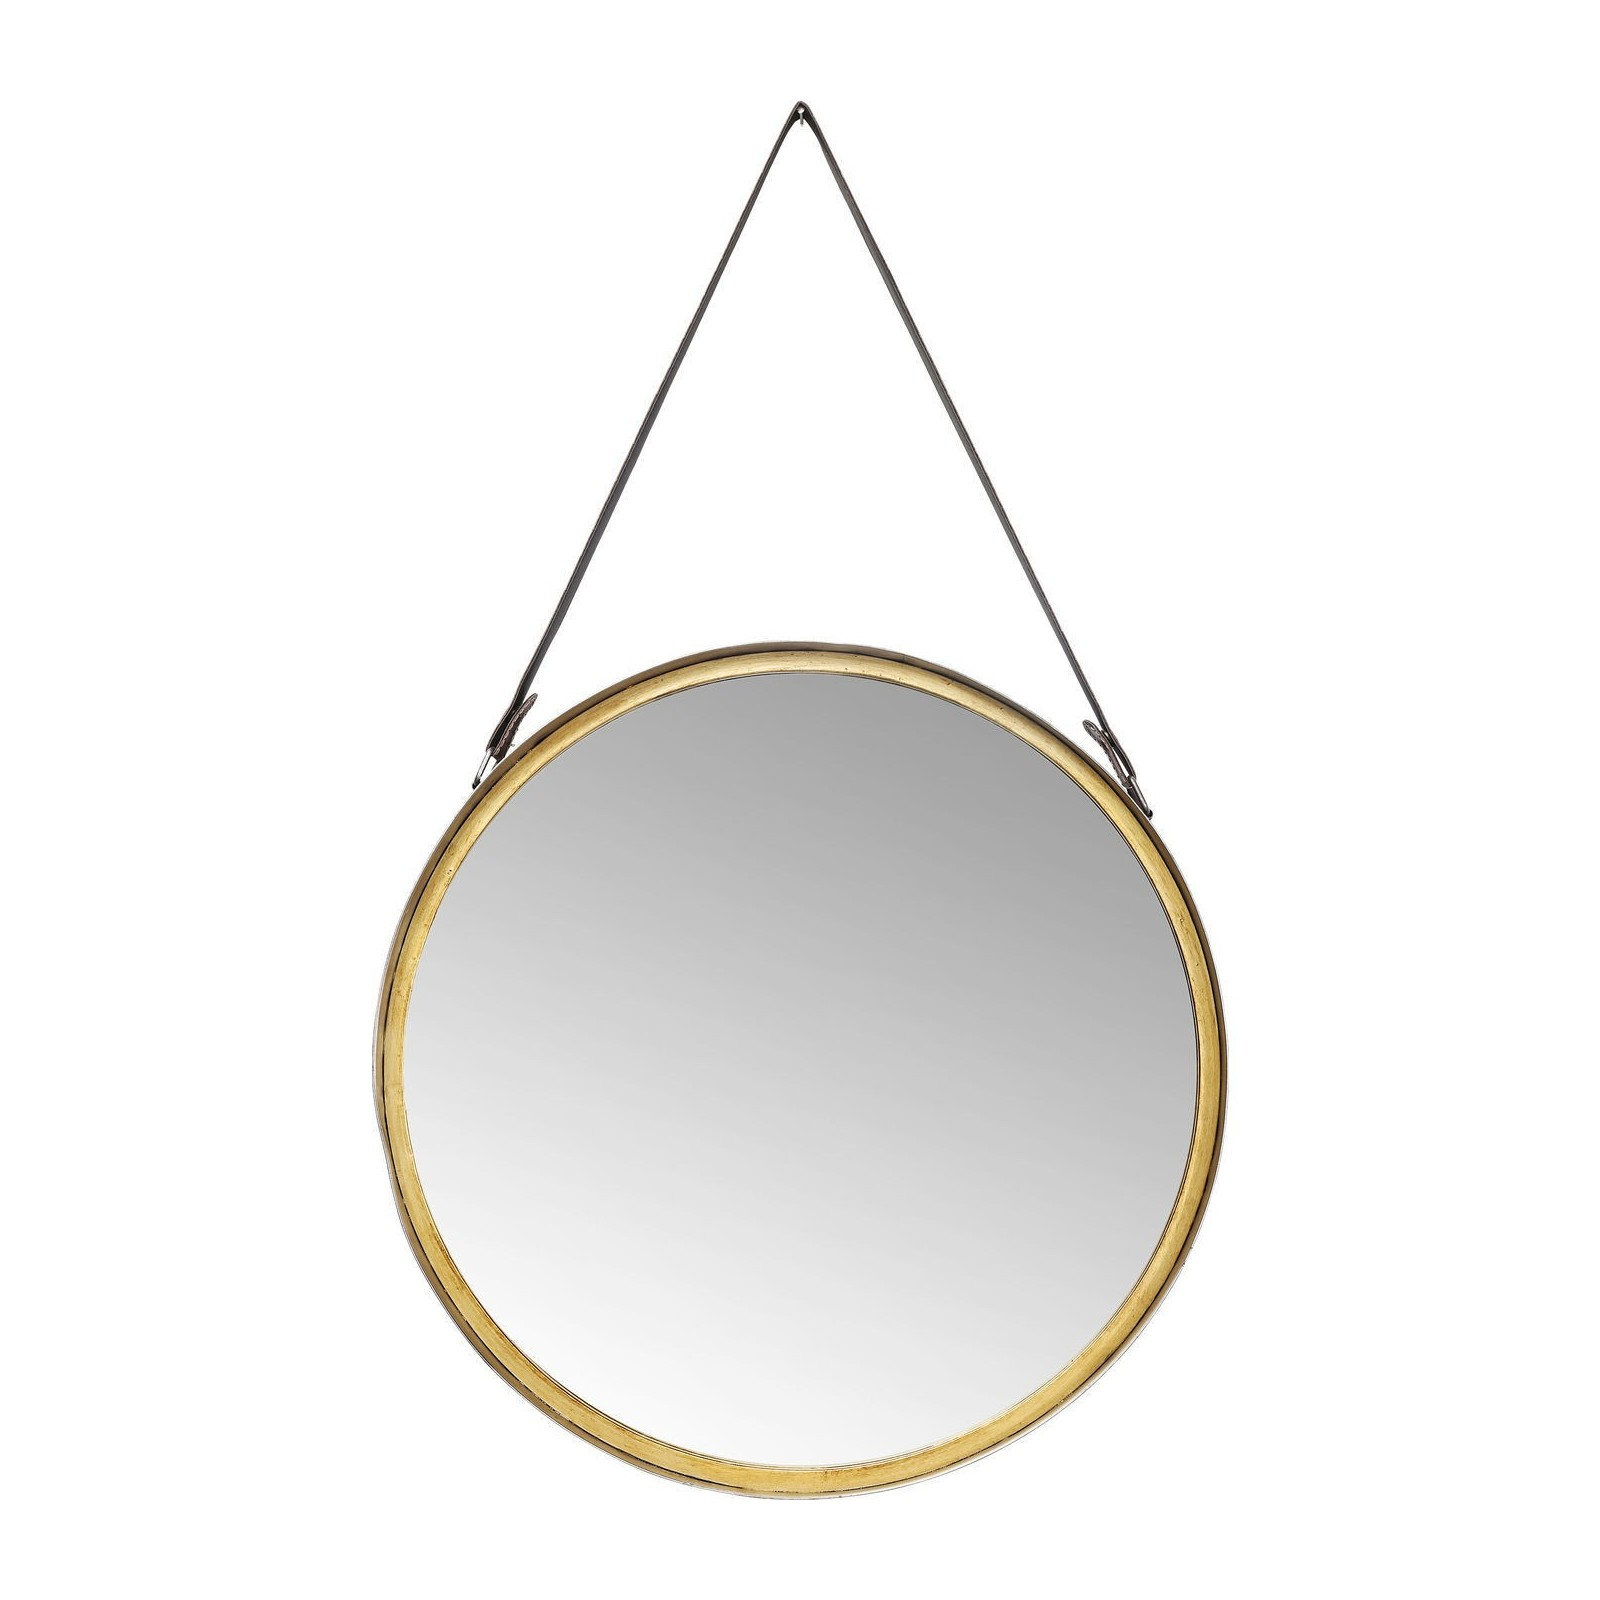 miroir grip rond kare design On miroir rond design